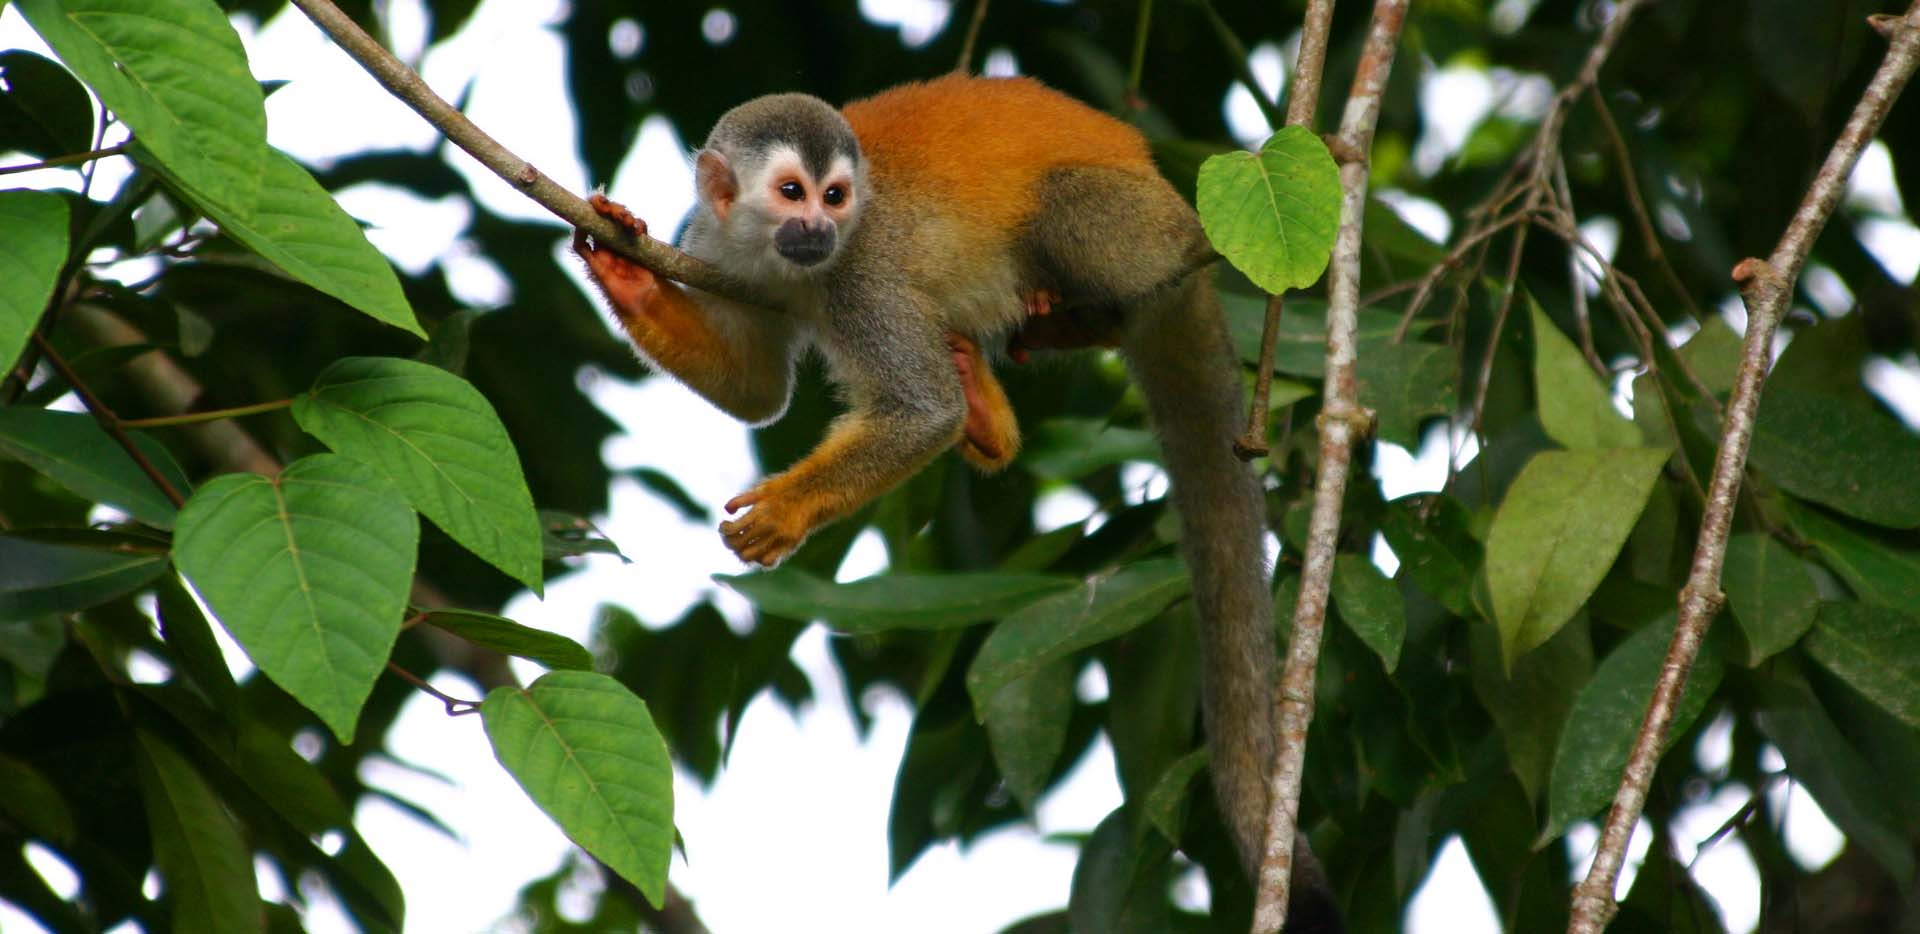 Squirrel Monkey on Tree Branch